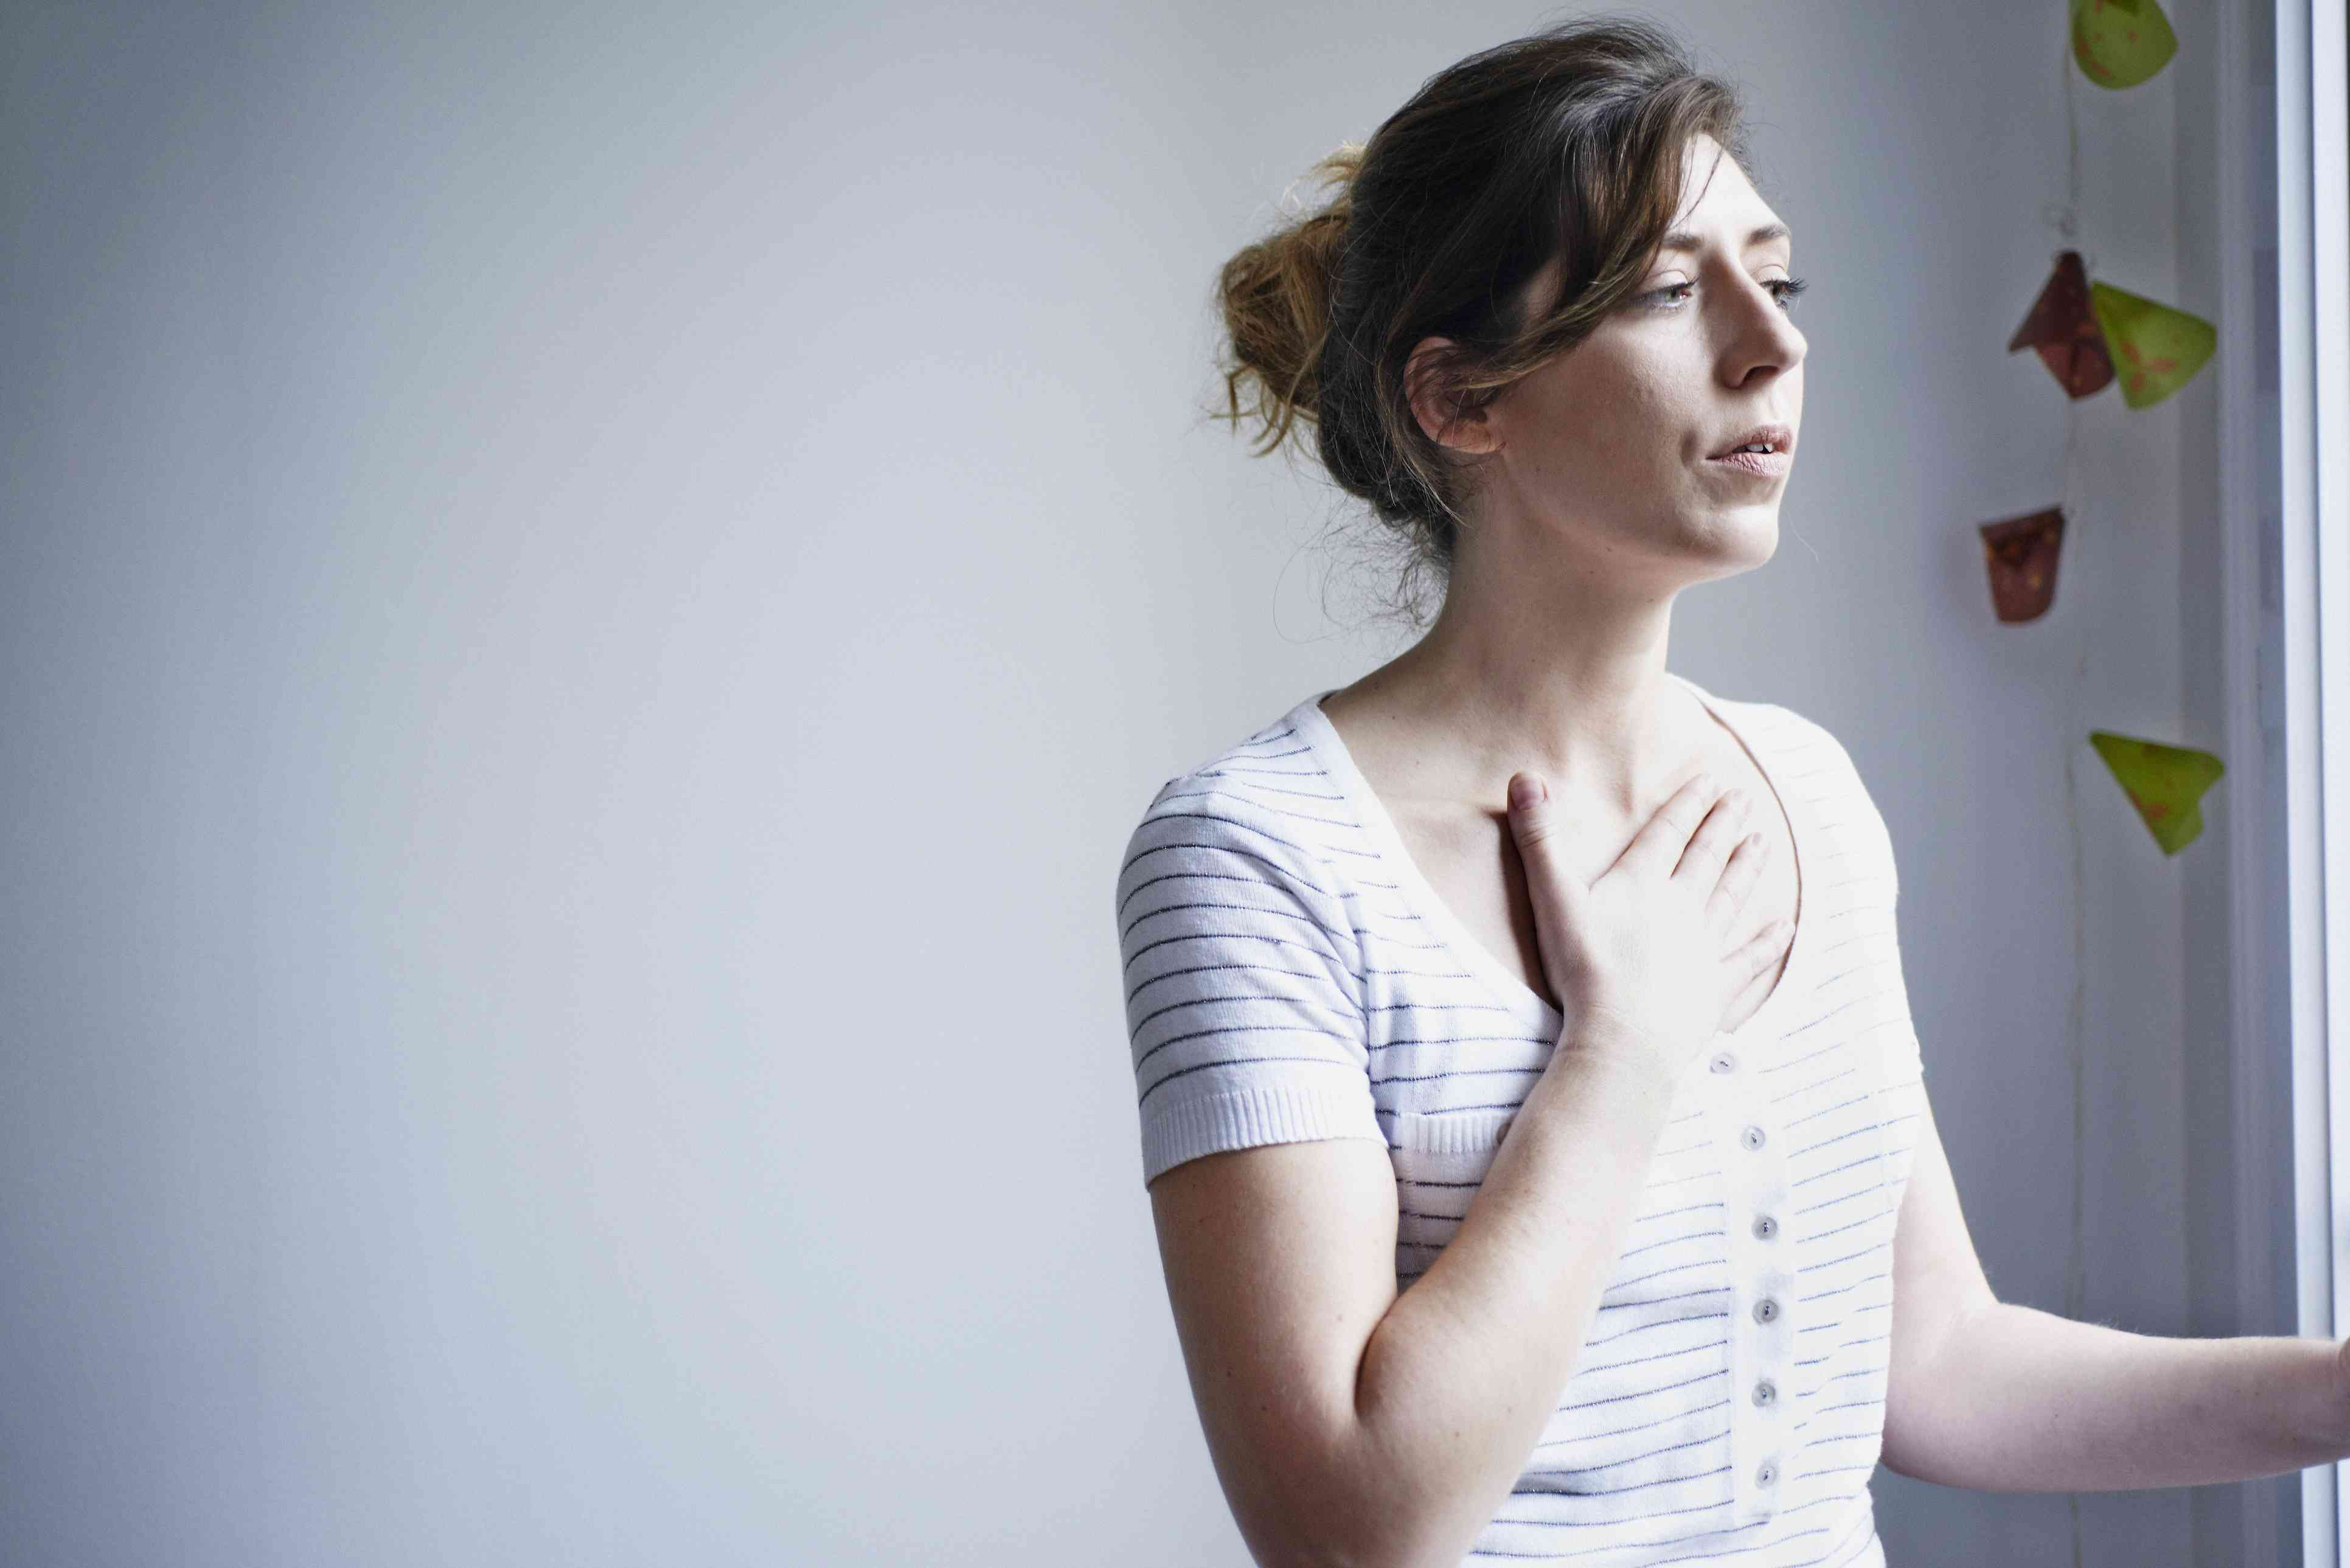 Woman with breathing difficulties. France